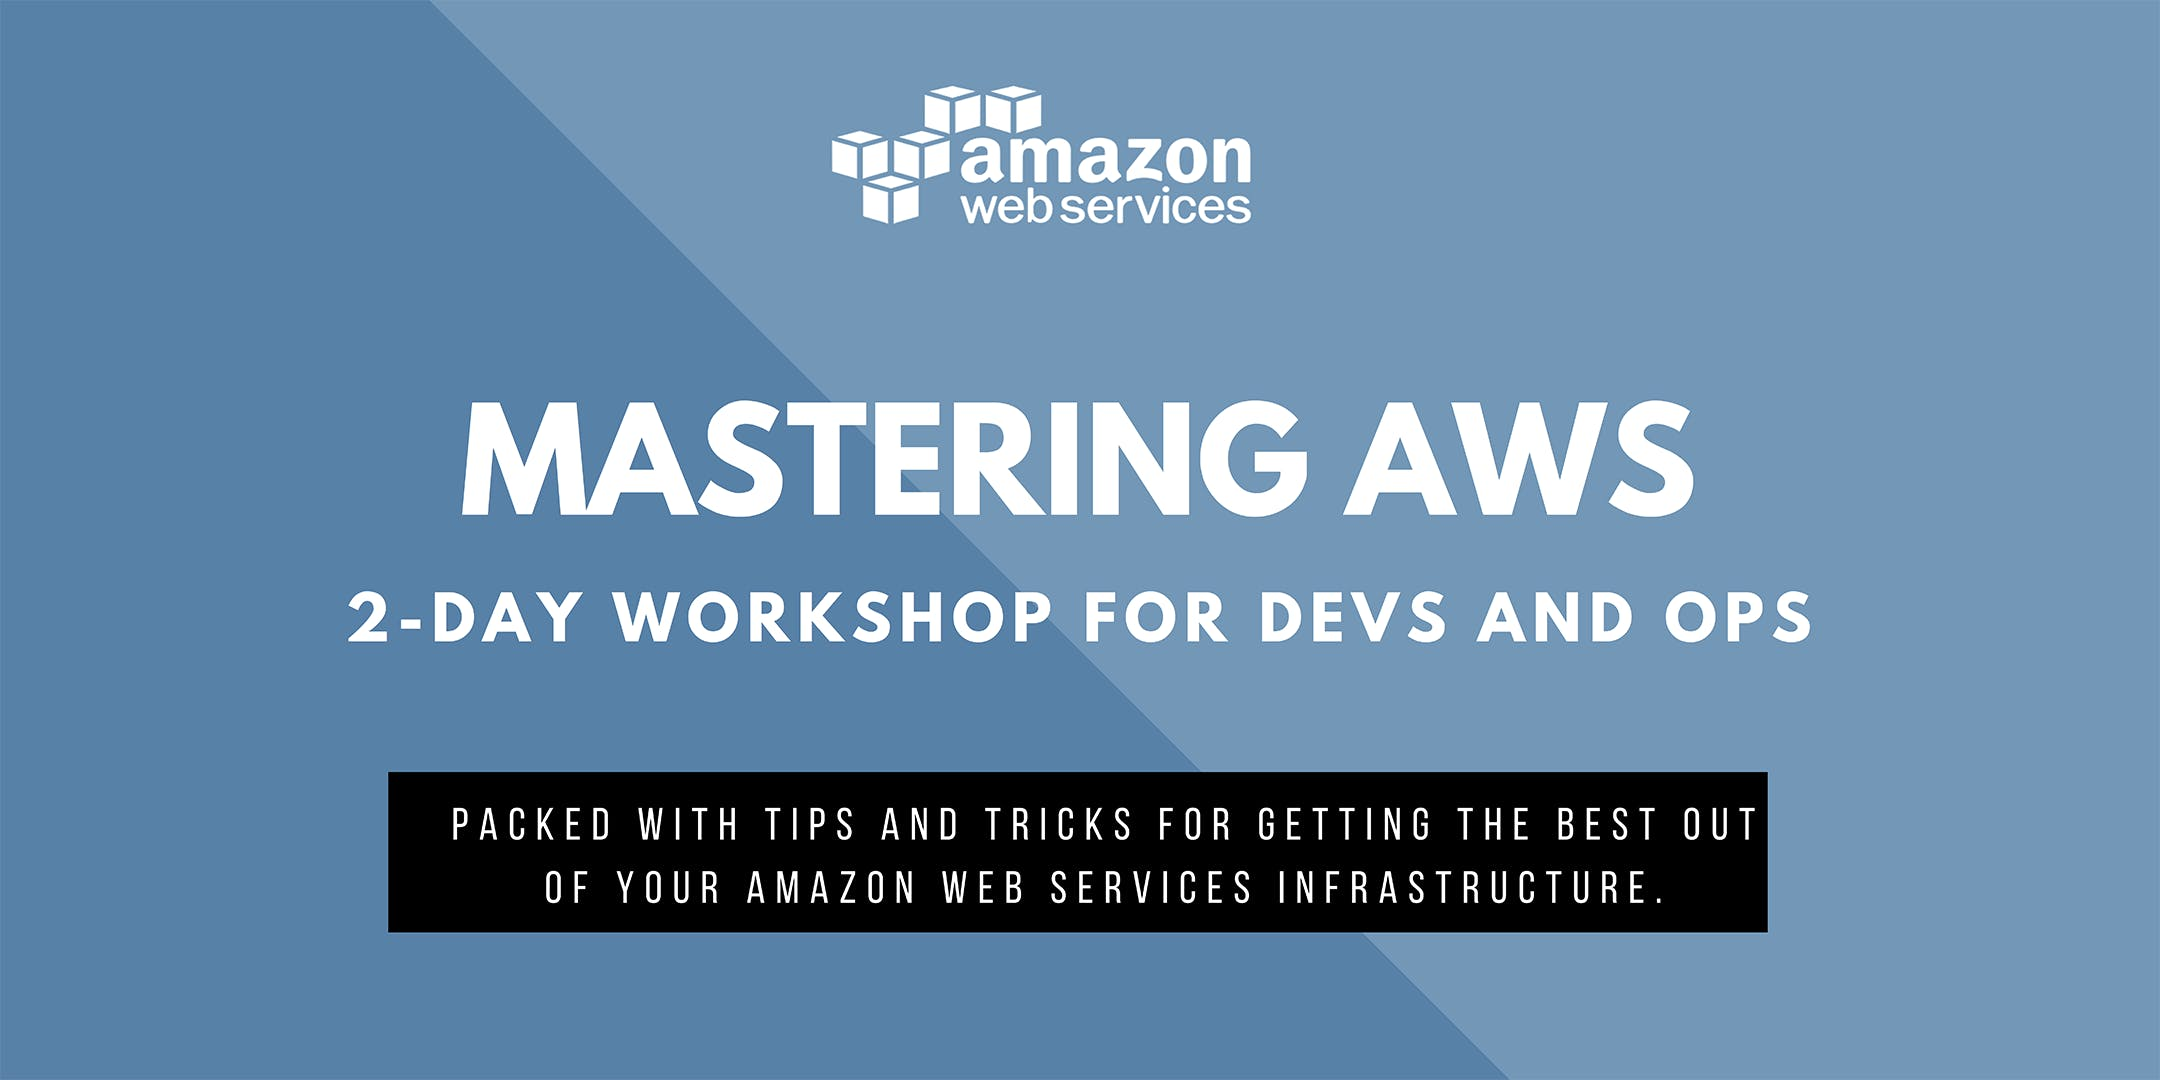 TOP Mastering Amazon Web Services (Manchester)